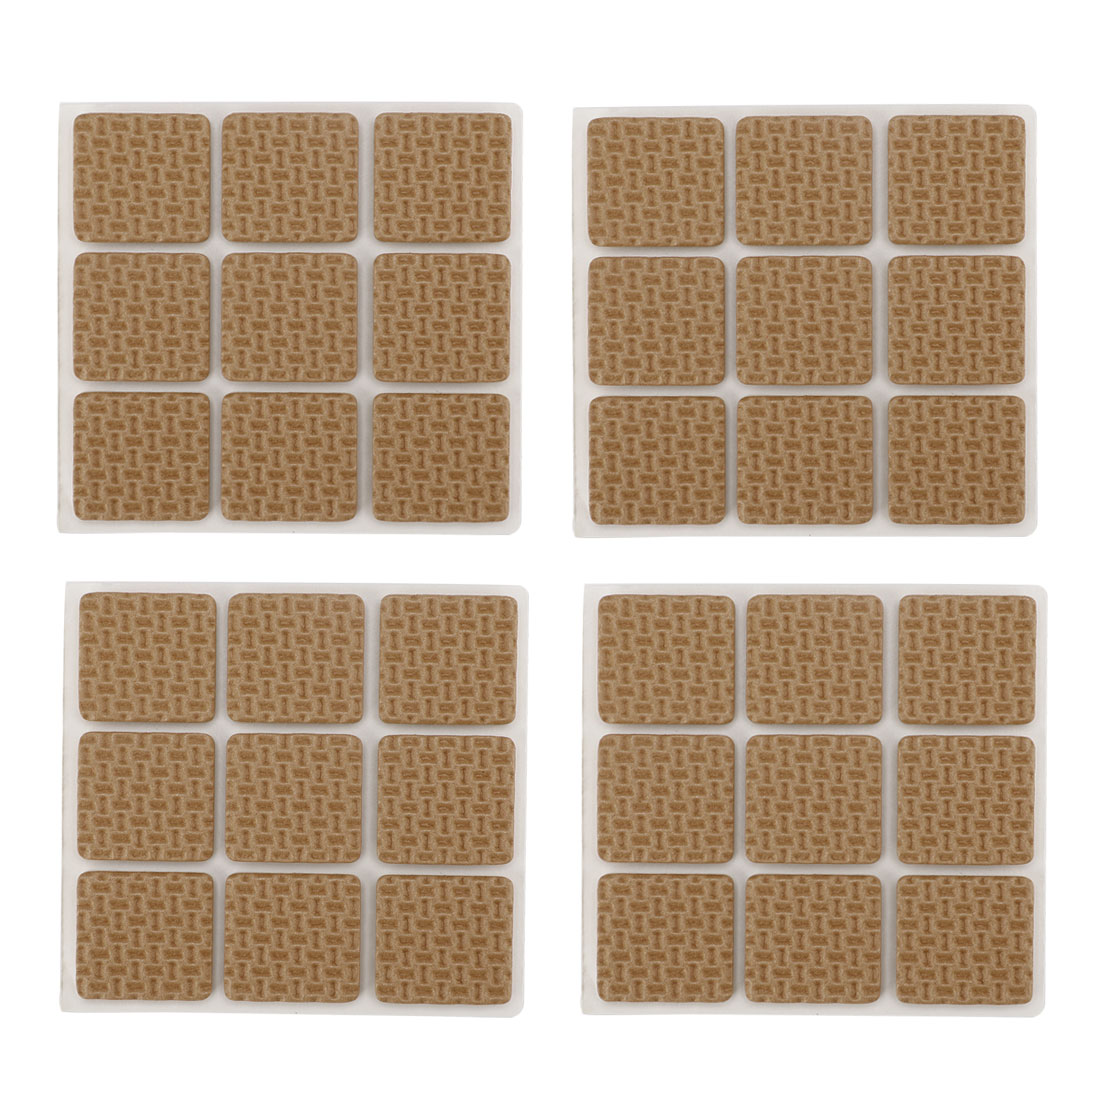 Table Chair EVA Square Anti Skid Furniture Feet Pads Cover Cushion Brown 25 x 25mm 36pcs